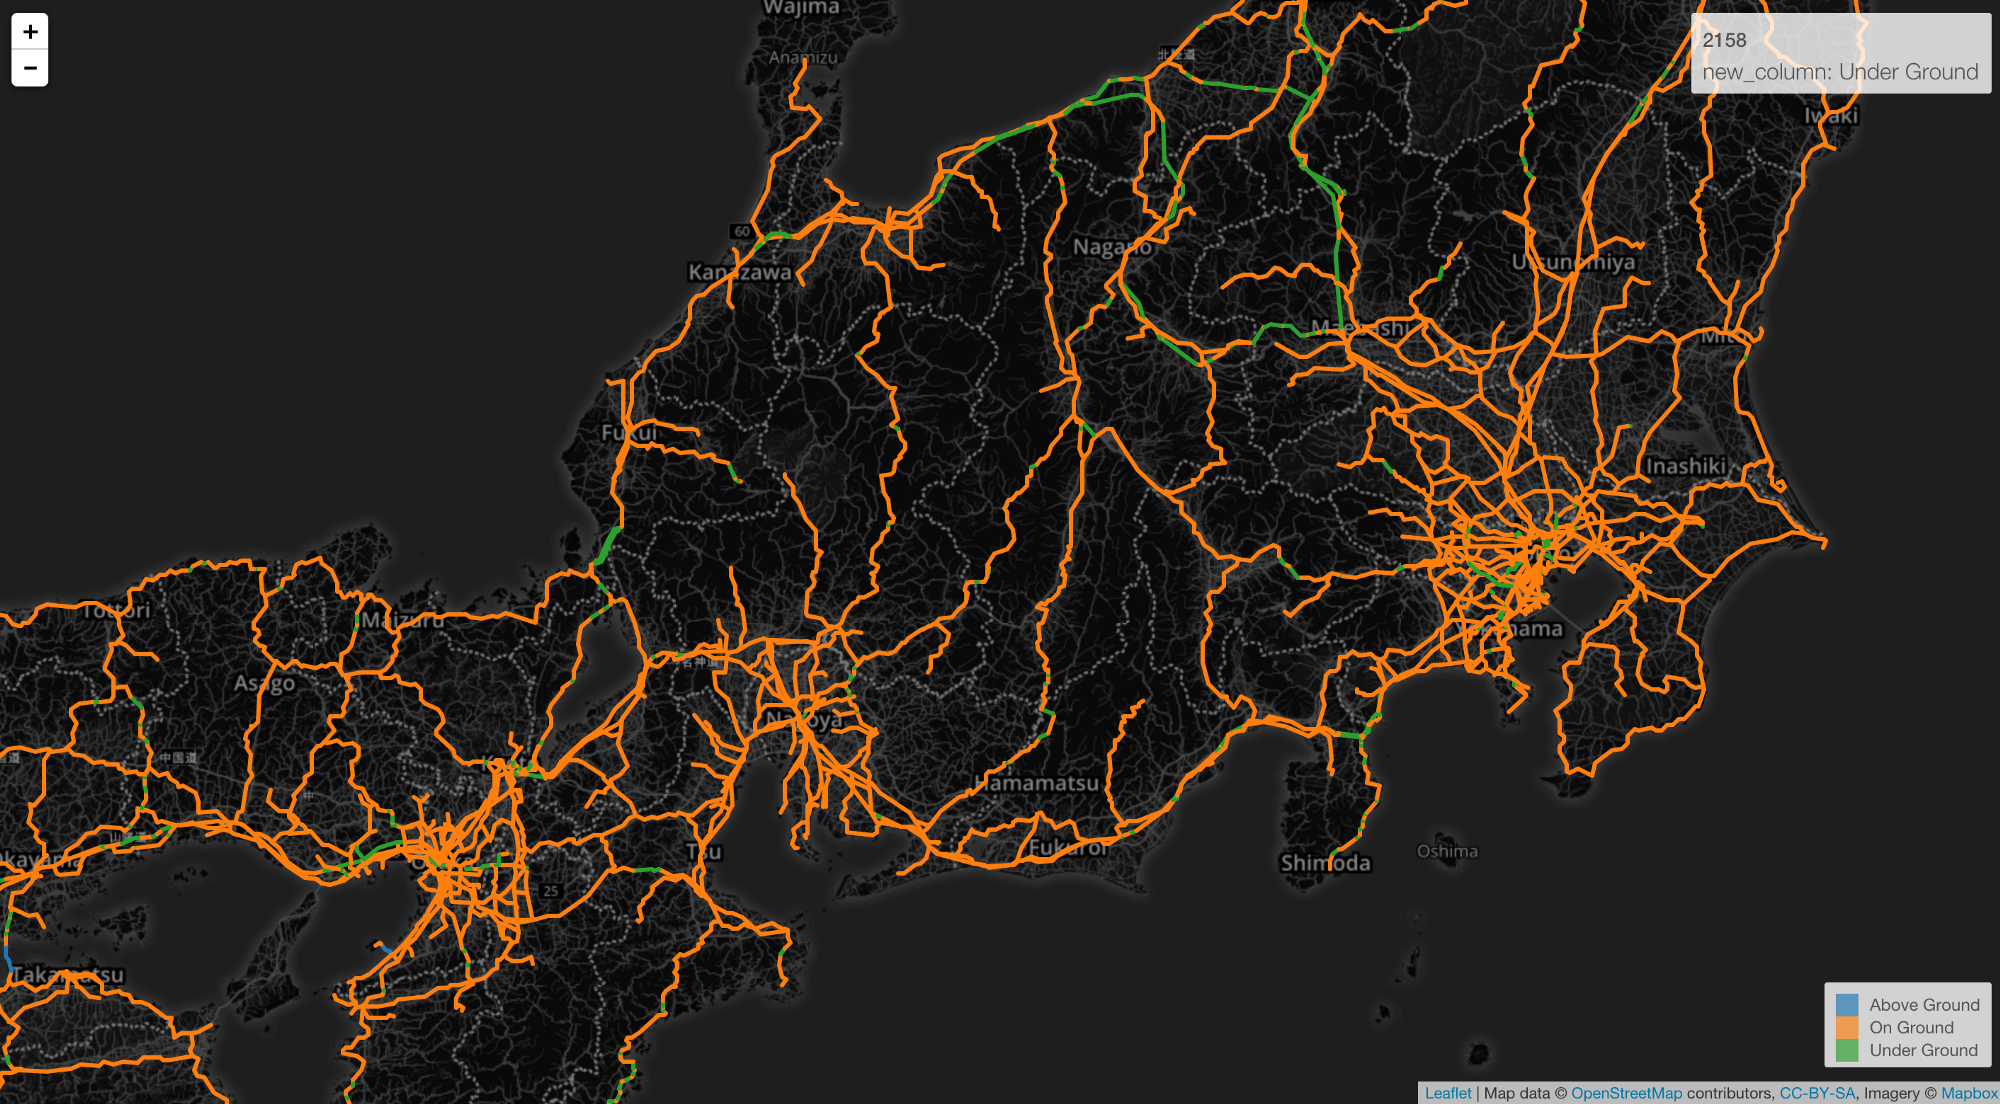 Visualizing geospatial data with your own geojson learn data science railroads in japan gumiabroncs Gallery